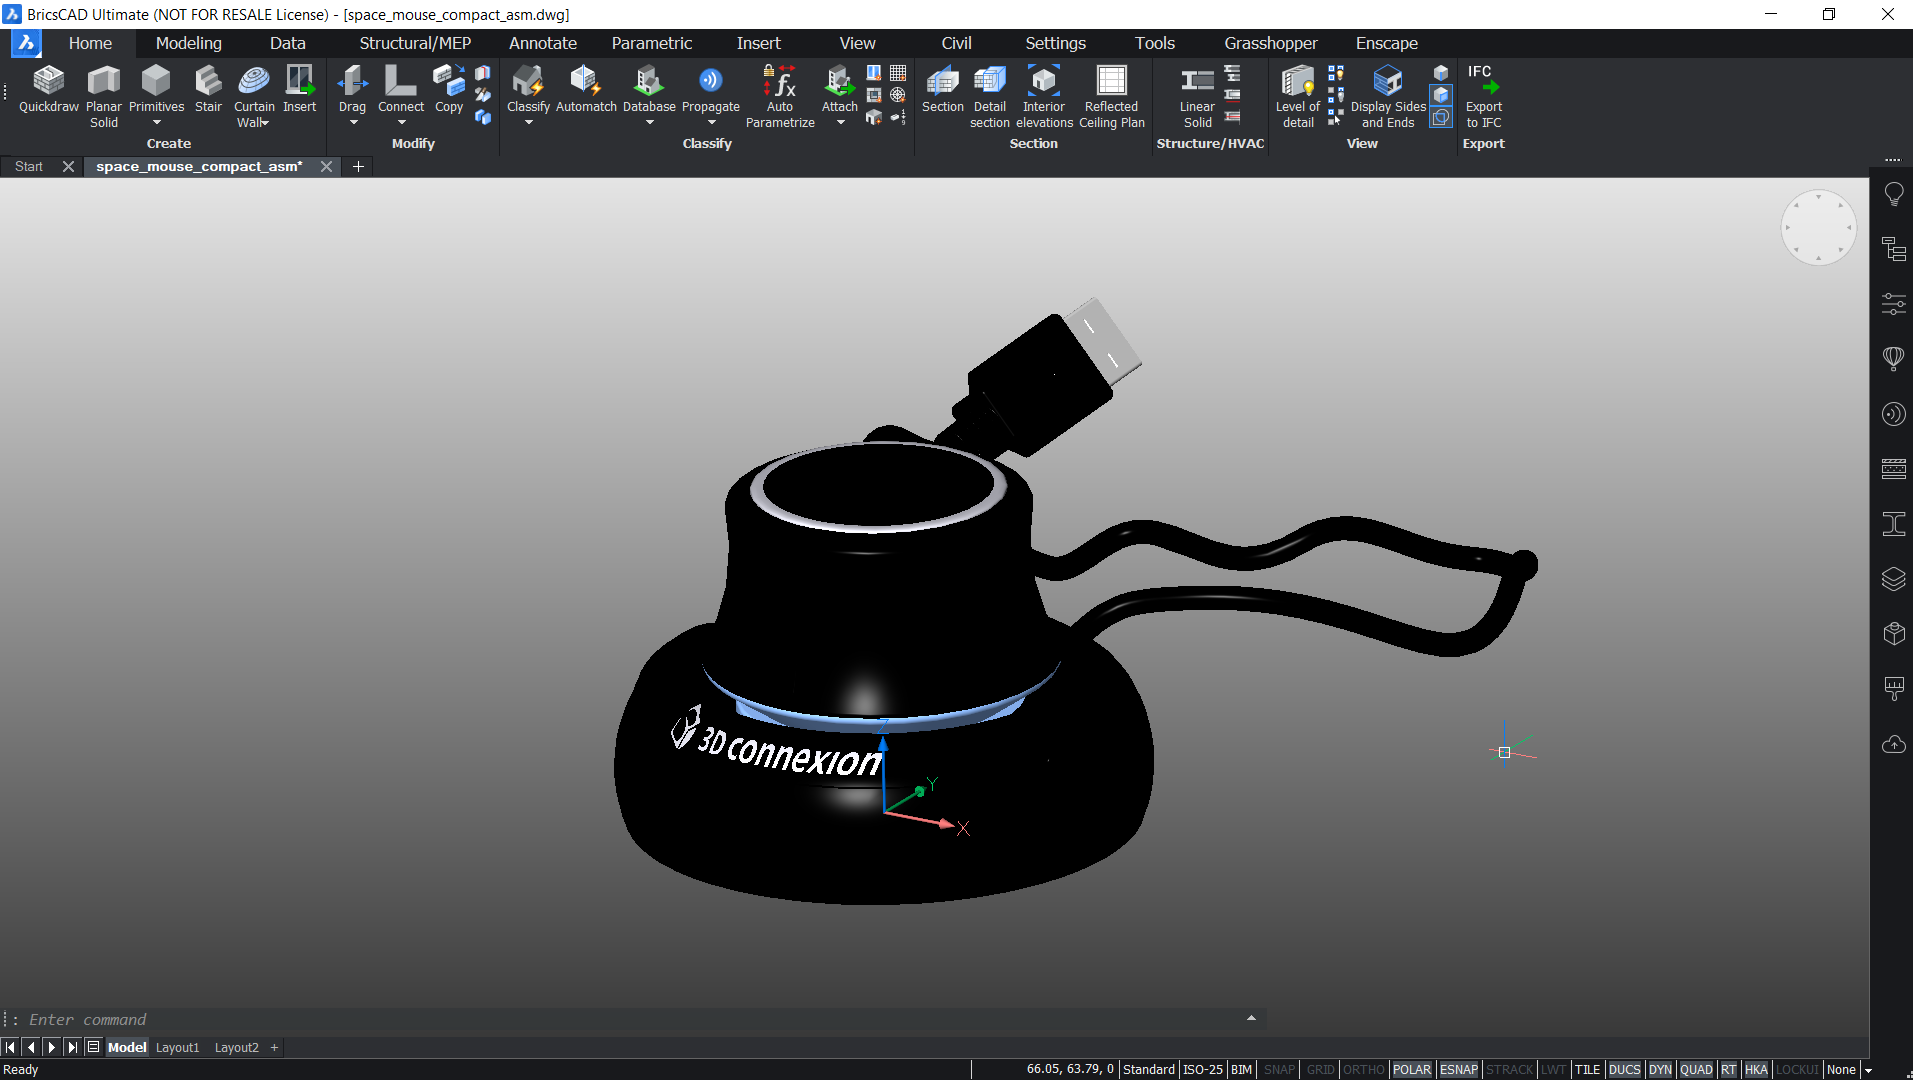 3d mouse in BricsCAD